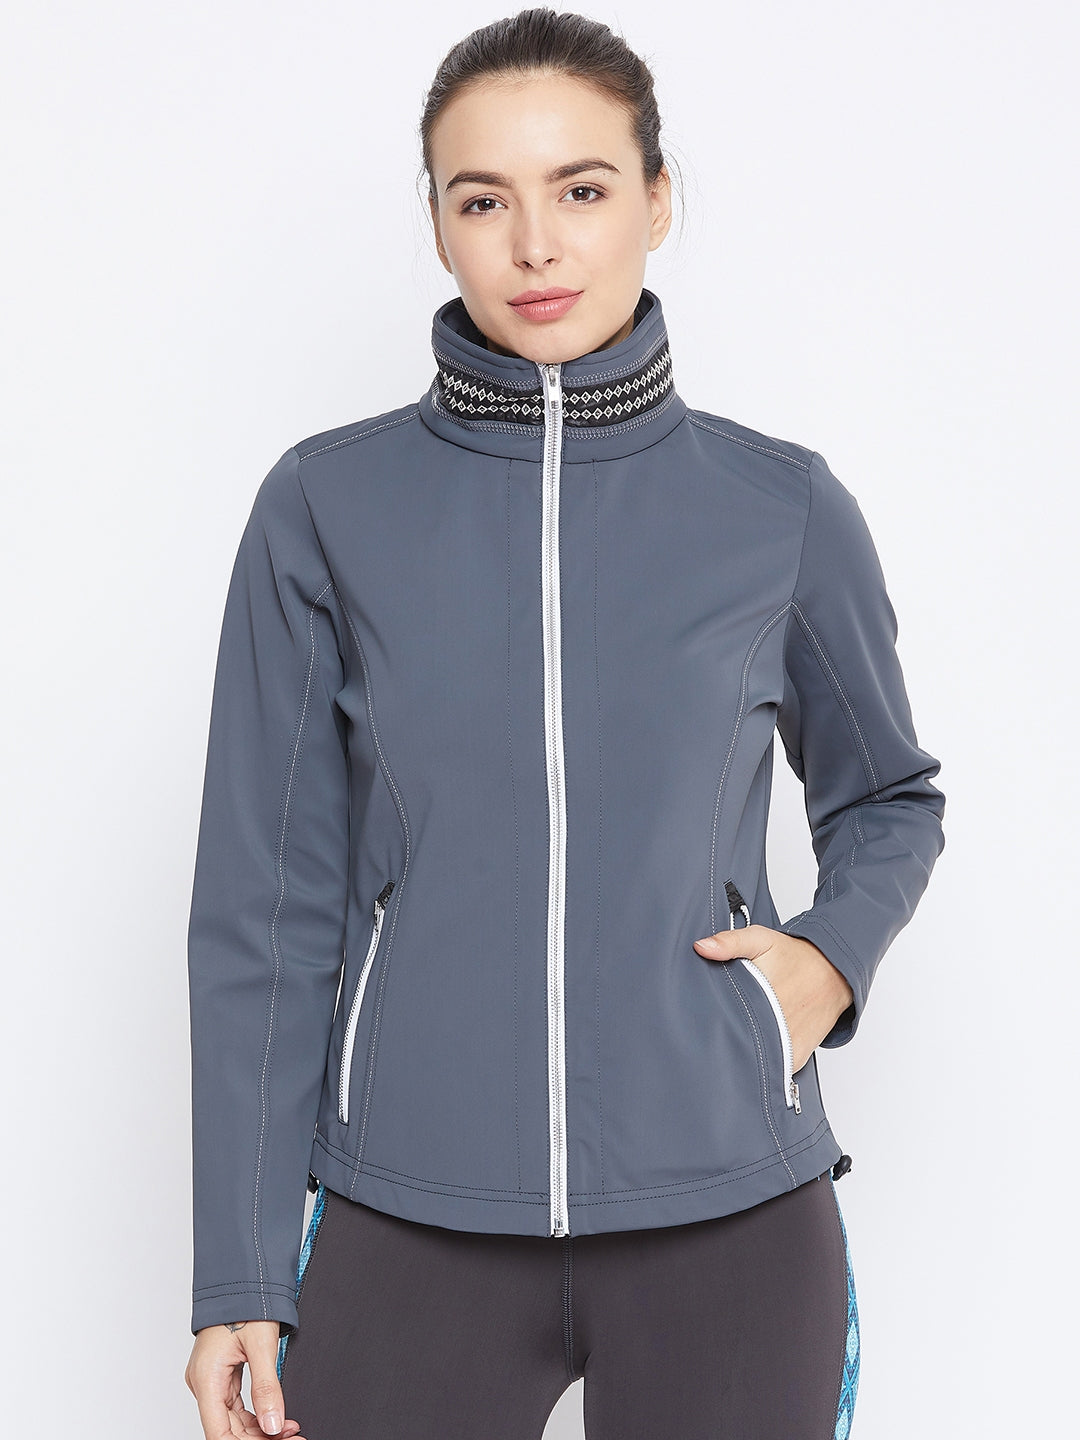 JUMP USA Women Grey Solid Sporty Jacket